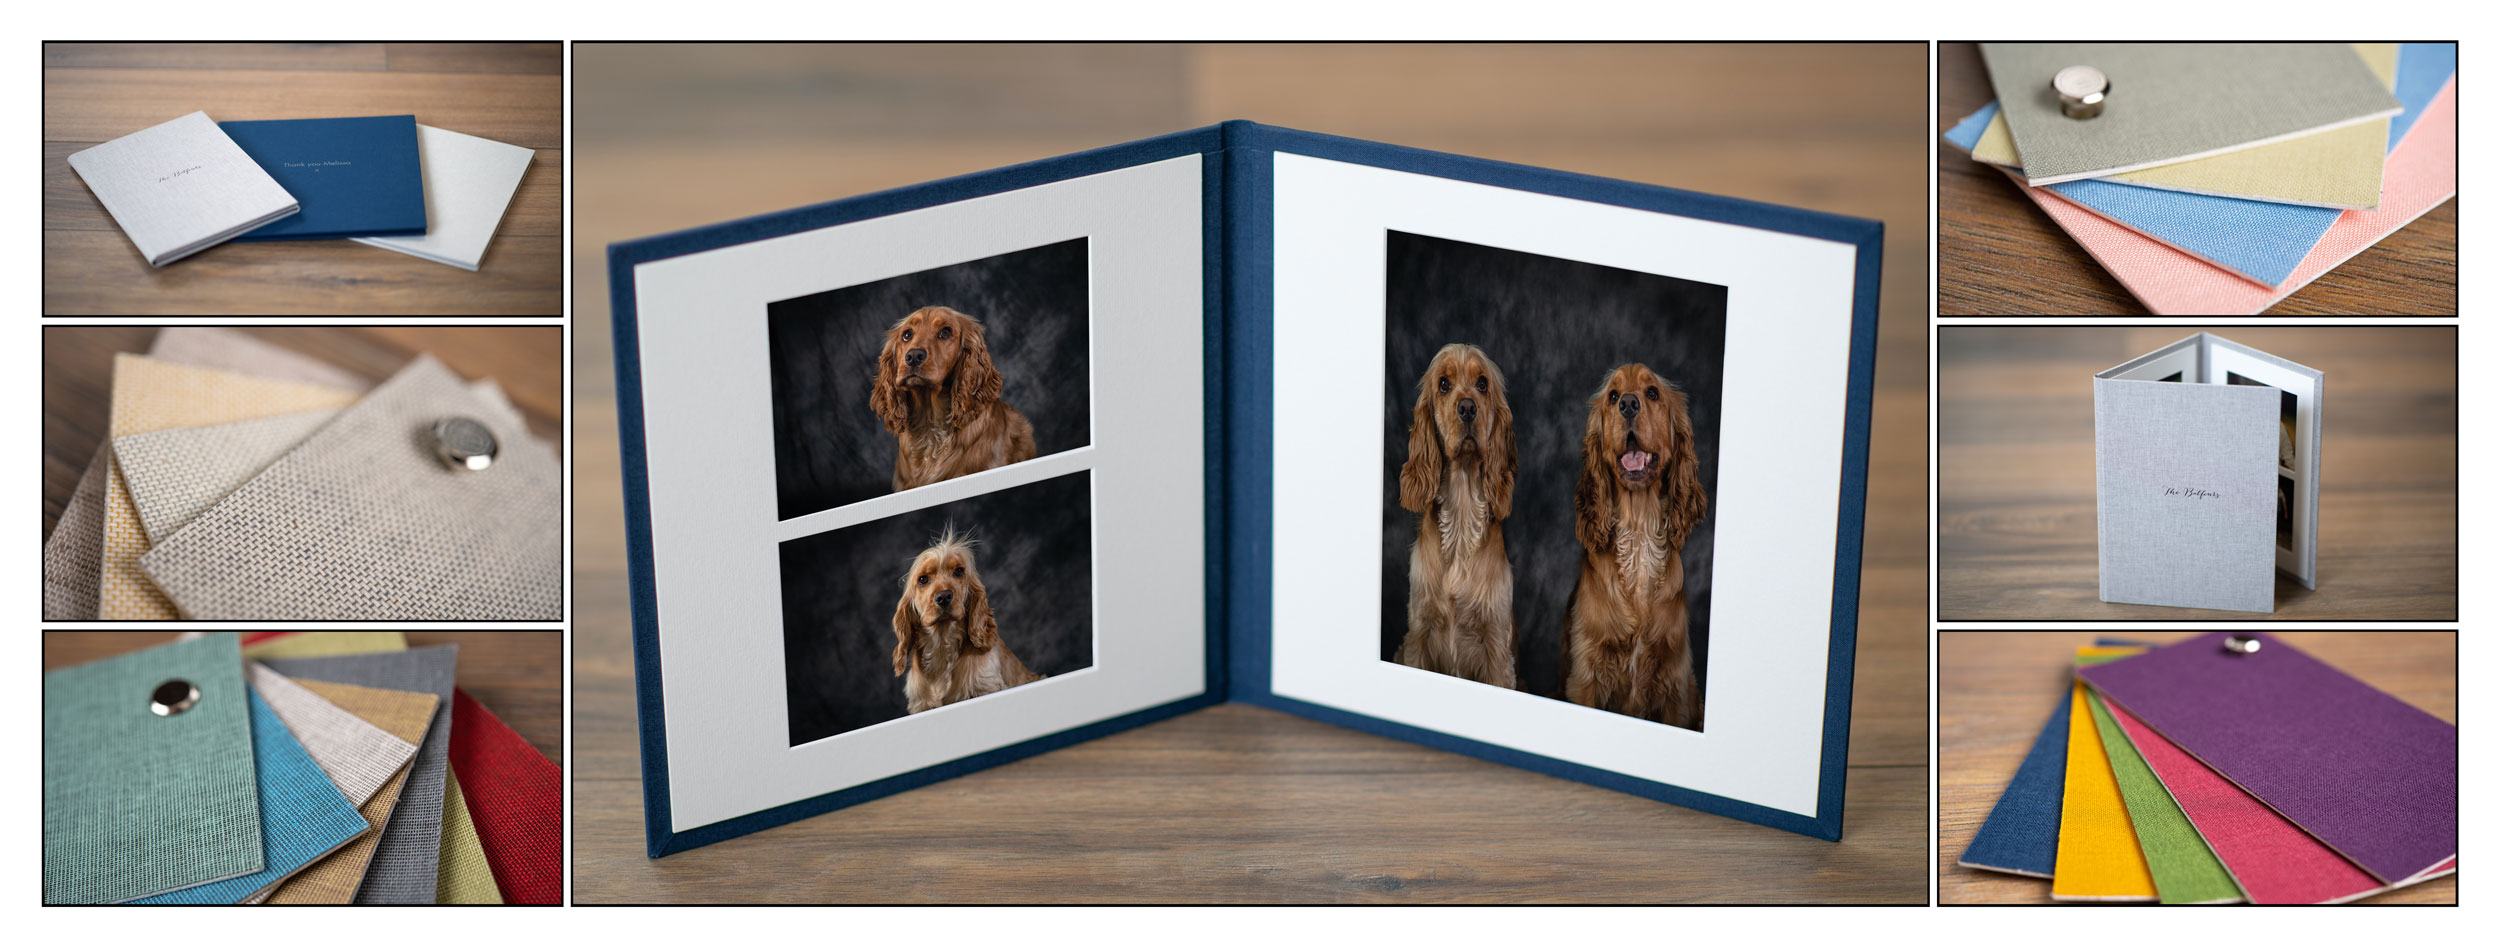 Pet Photos Trevor Lucy Photography Fermanagh Omagh Donegal Enniskillen